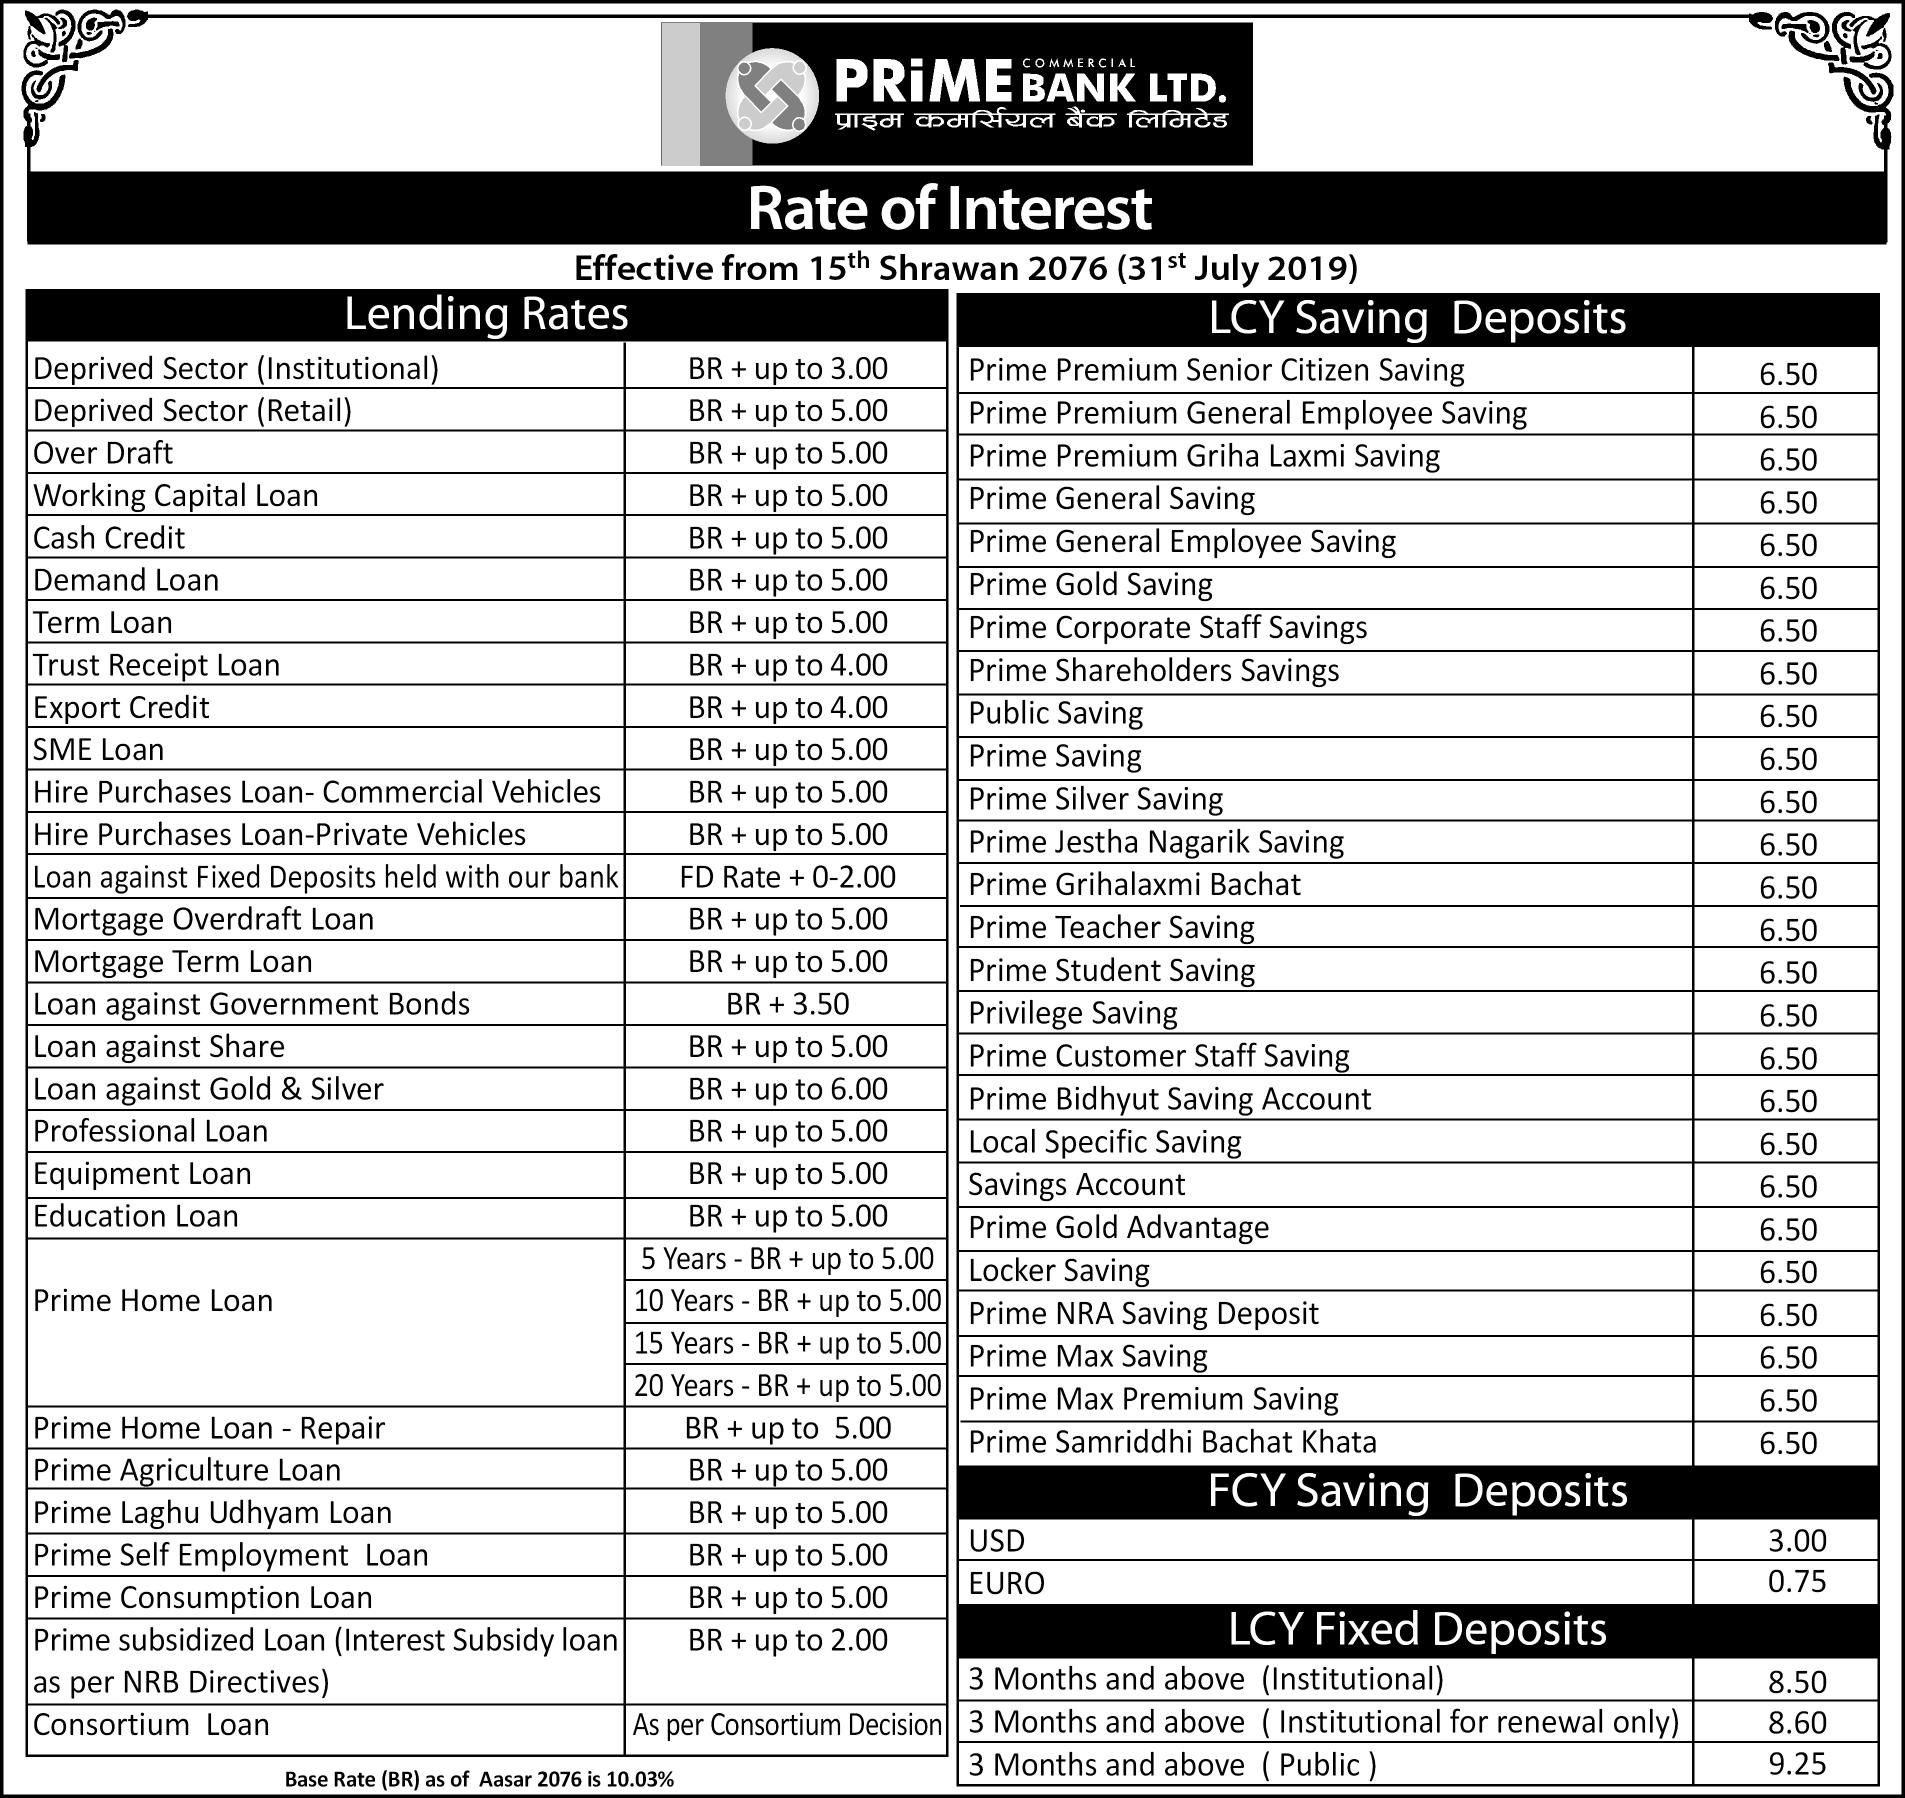 Interest Rate : Prime Commercial Bank Ltd, Nepal